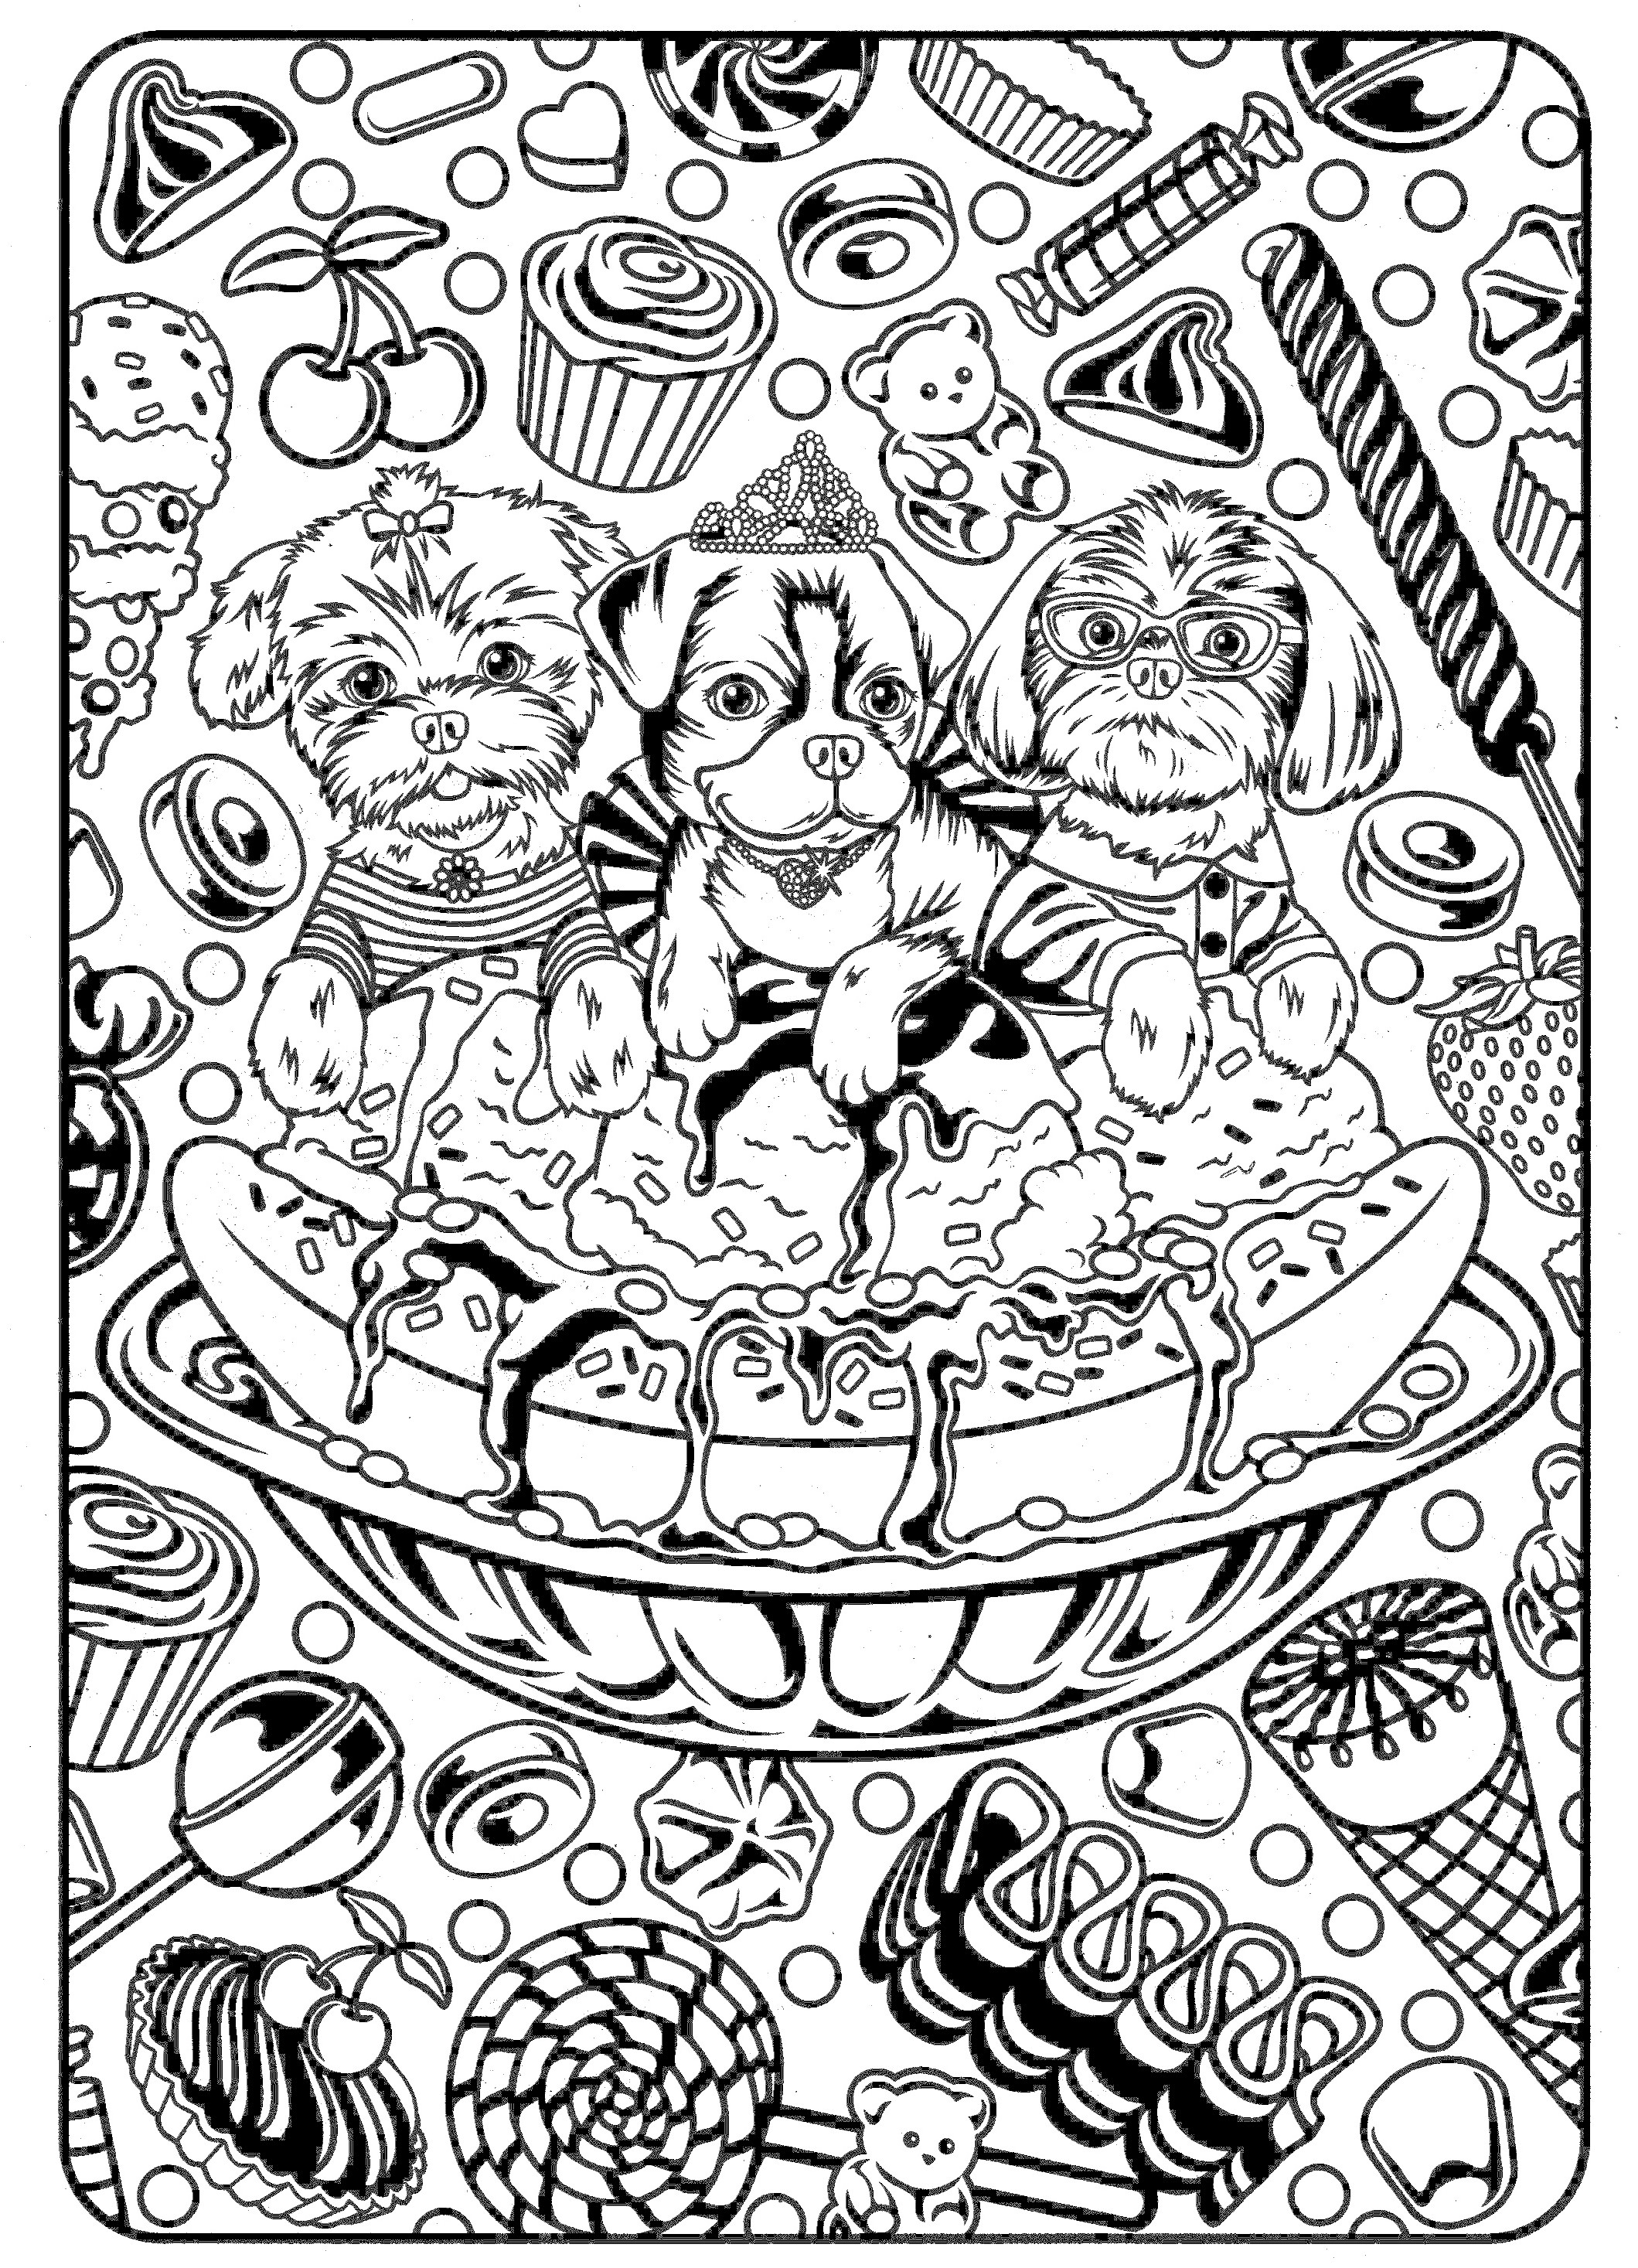 cute pictures coloring pages | Cute Coloring Pages - Best Coloring Pages For Kids